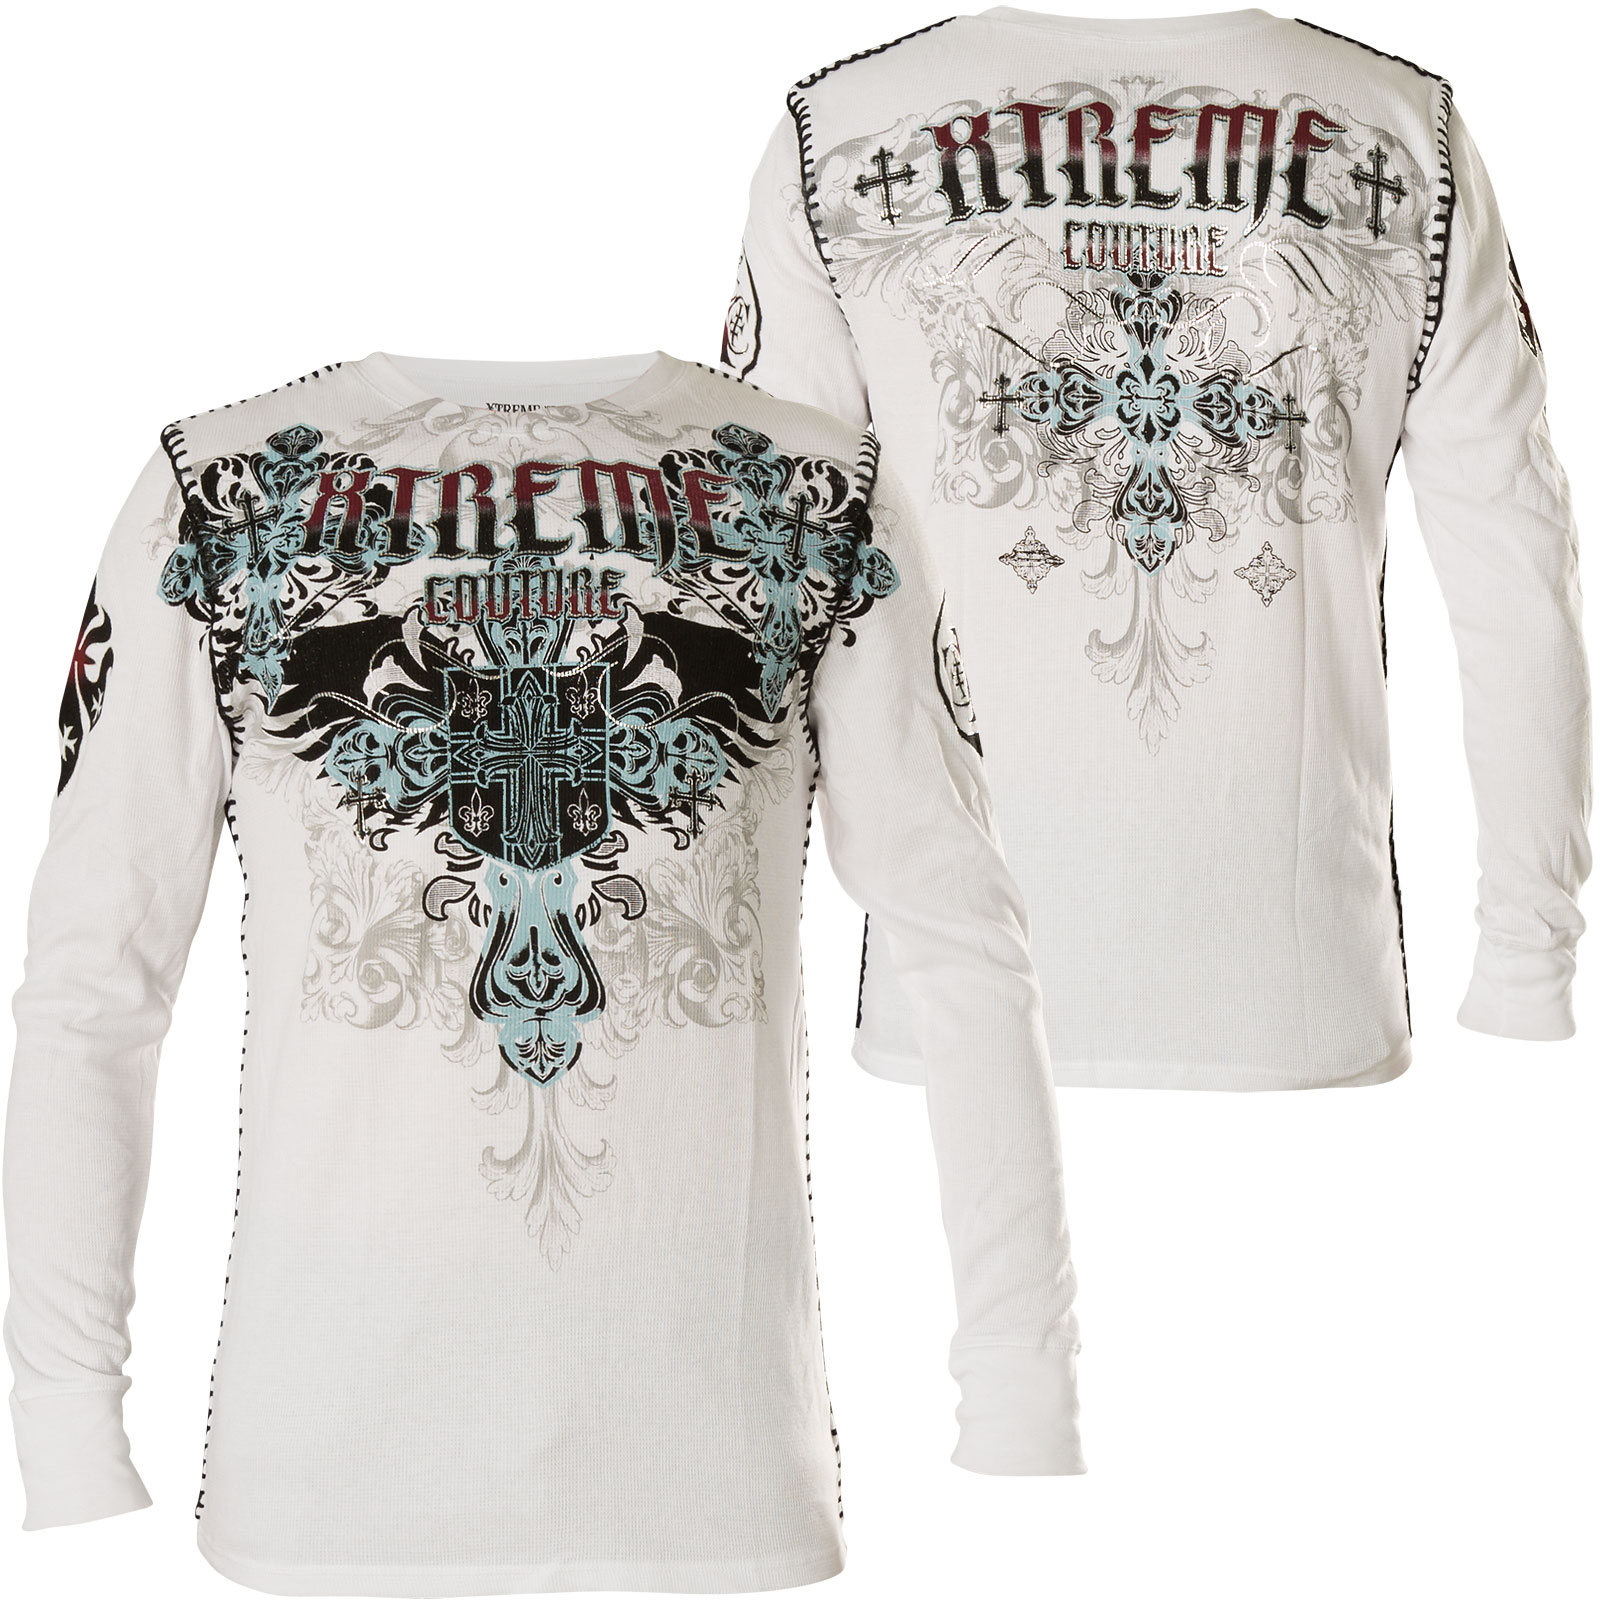 8bd32047c07 Xtreme Couture by Affliction Thermal Classic Creast Print of a cross